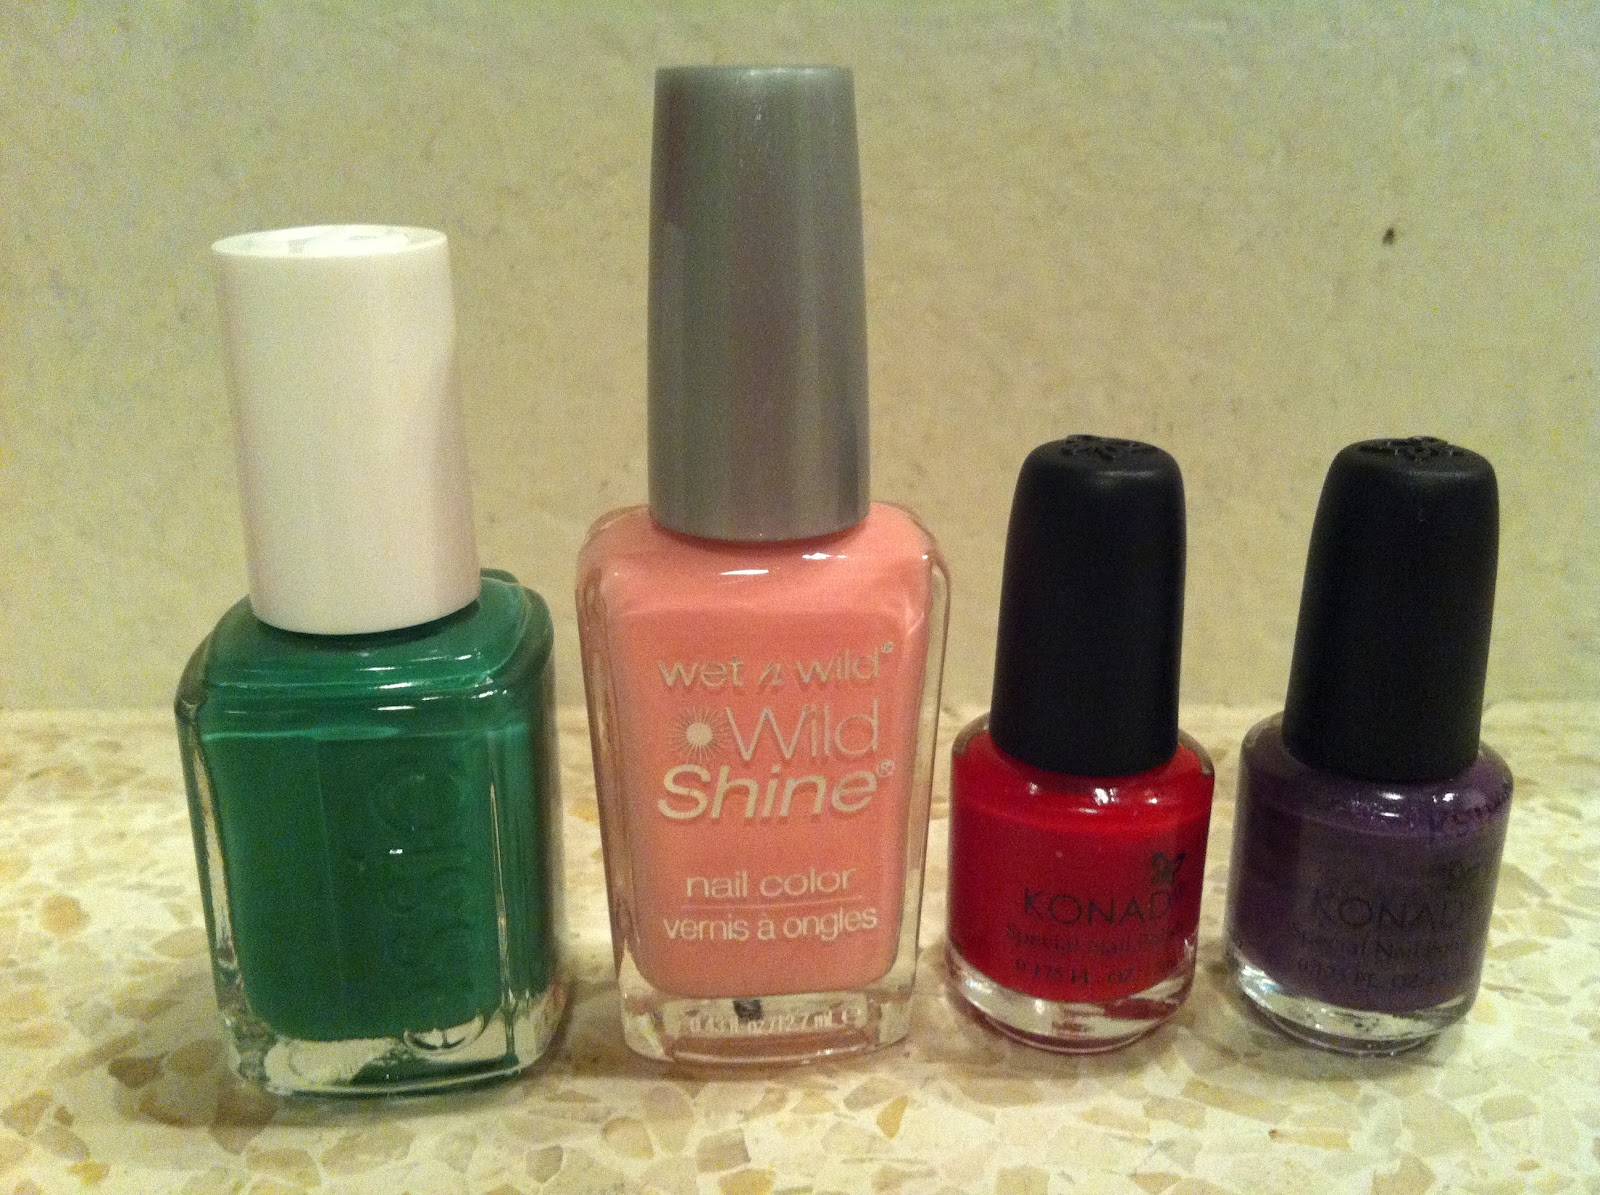 nailpolishes essie wild and shine konad